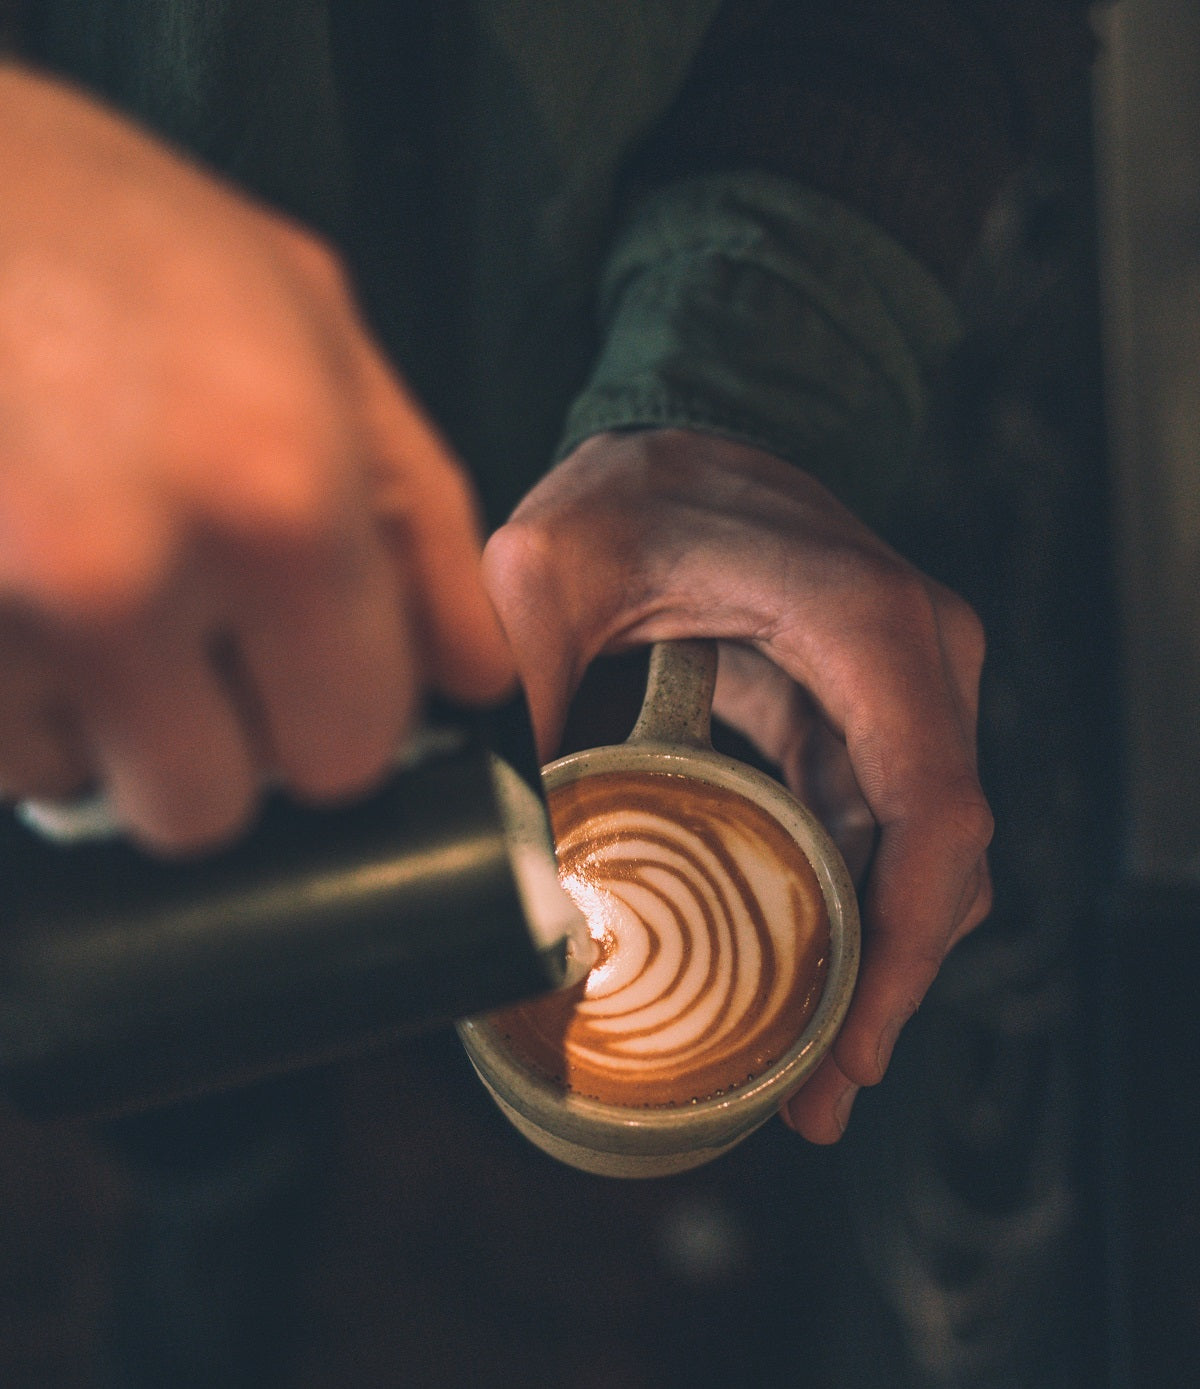 pouring steamed milk into cup with espresso